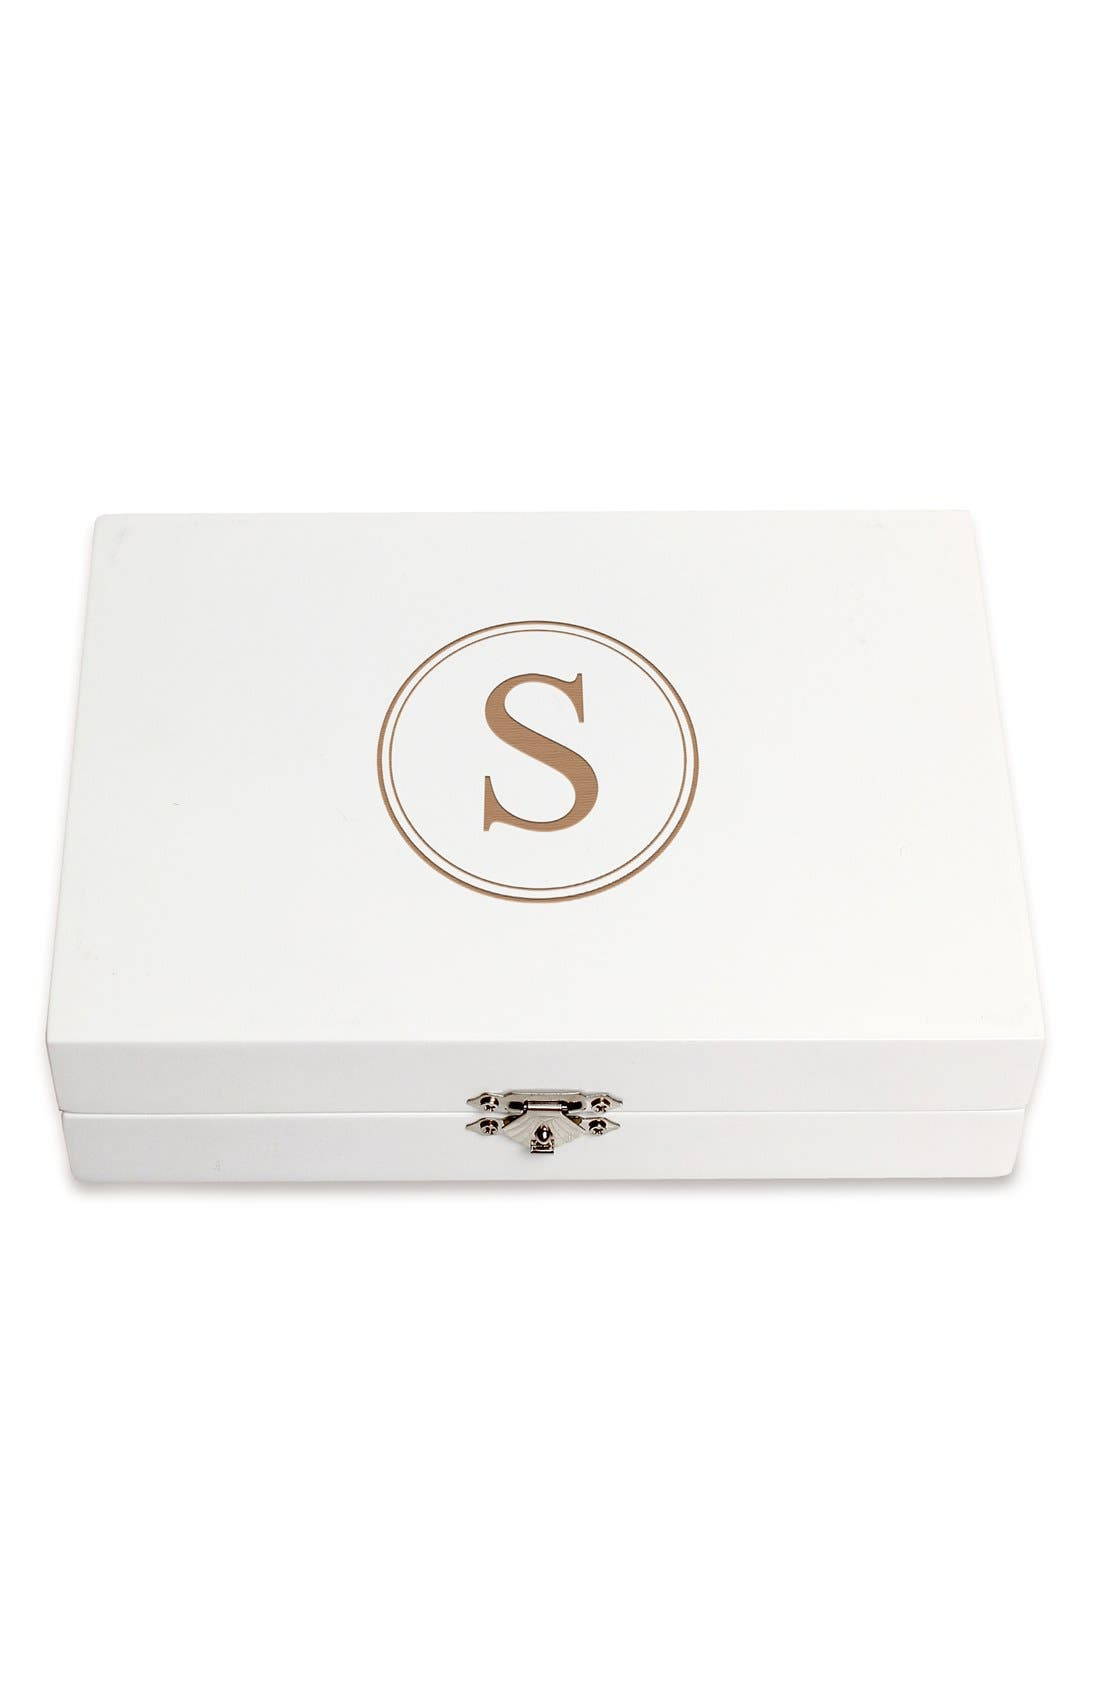 Monogram Wooden Jewelry Box,                             Alternate thumbnail 58, color,